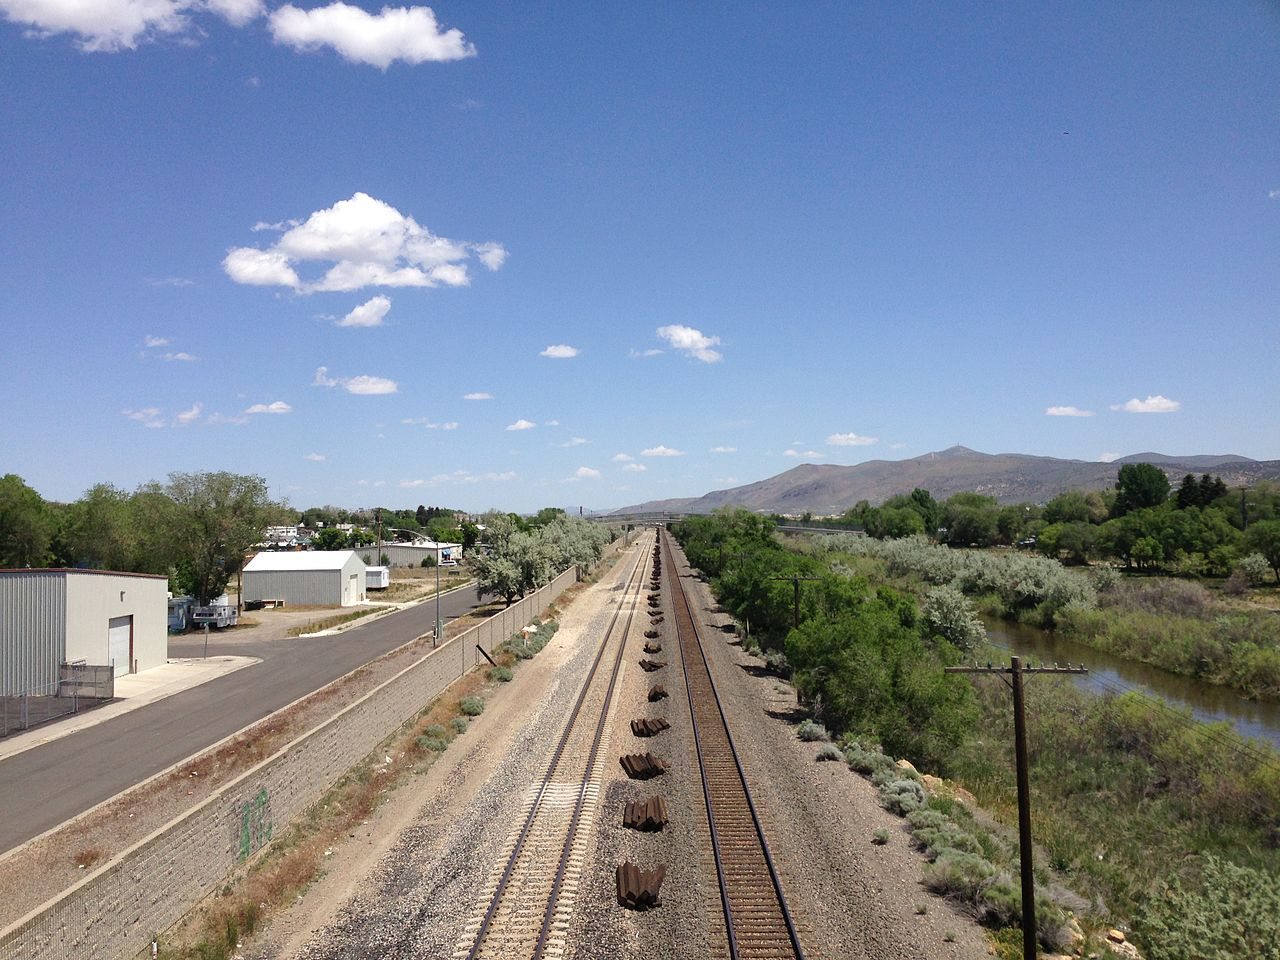 2014-06-04_12_04_00_View_east_along_the_Union_Pacific_Railroad_from_the_5th_Street_Bridge_in_Elko,_Nevada